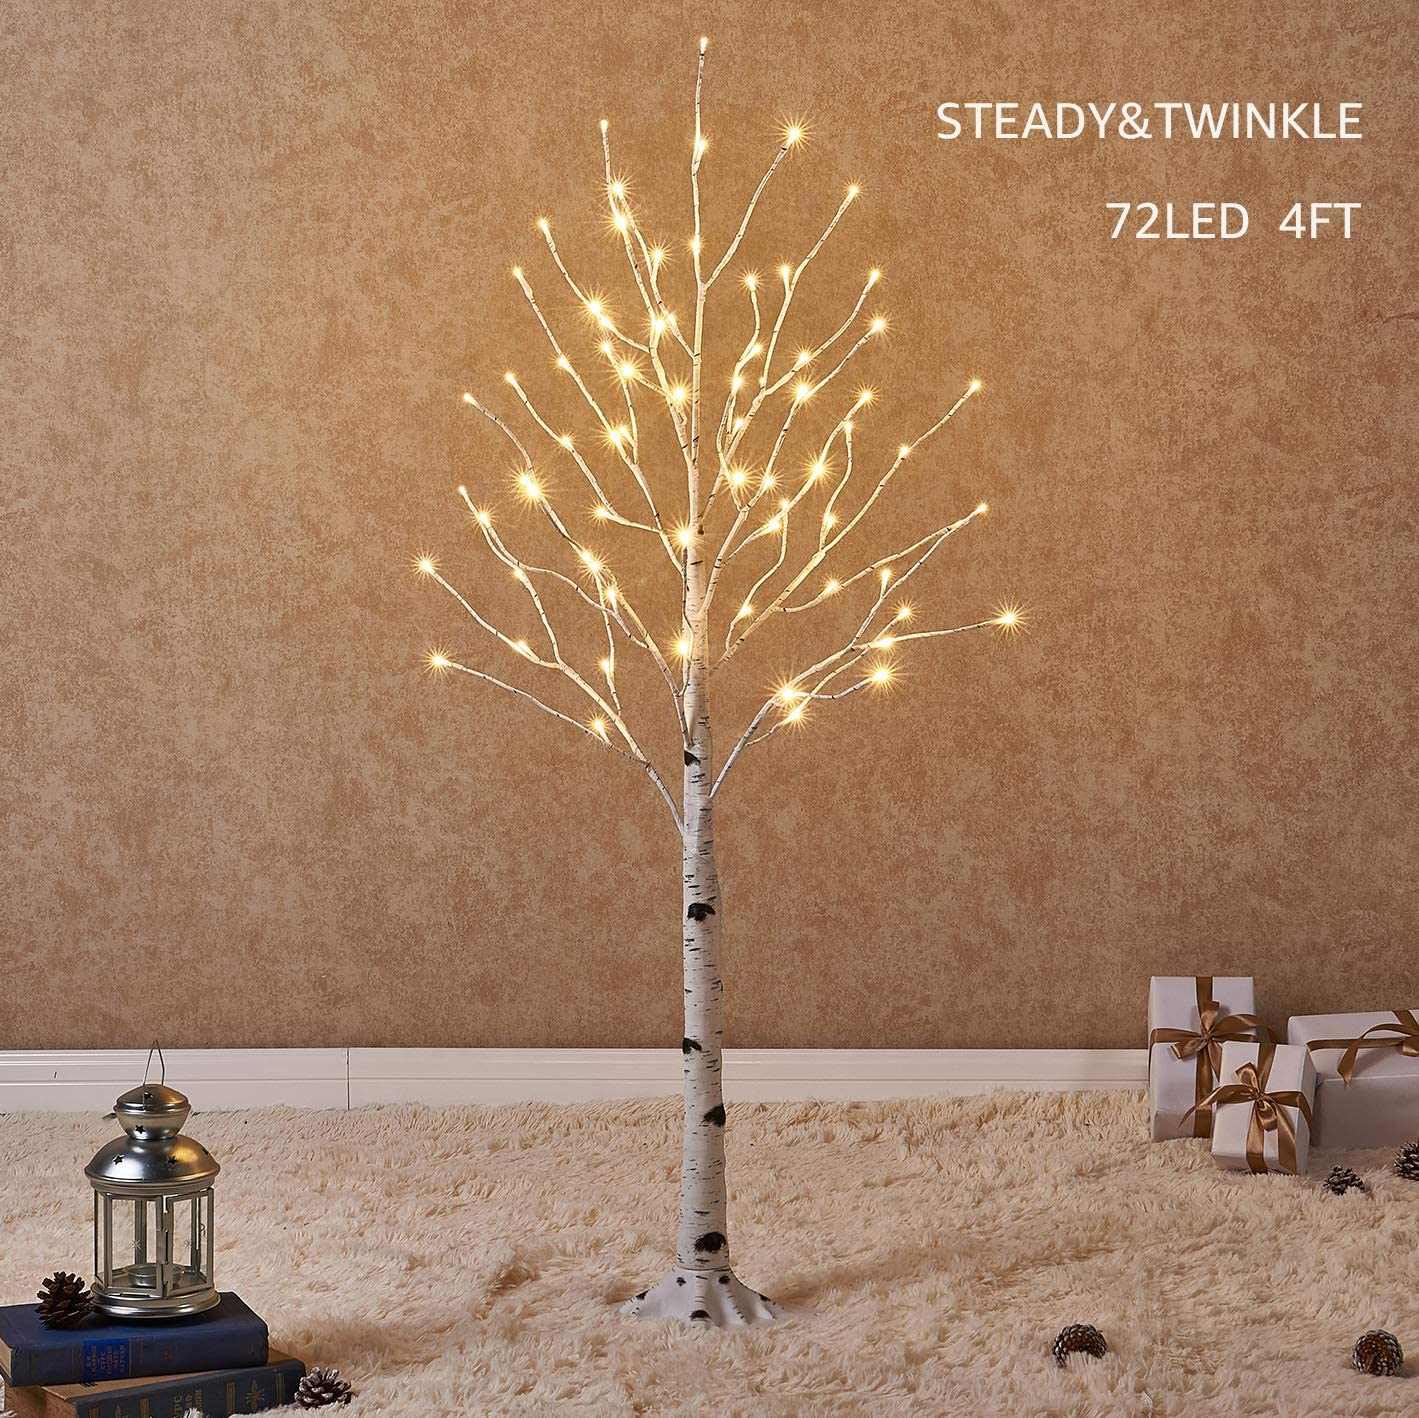 Hairui Prelit White Birch Tree with LED Lights 4FT 72L for Christmas Holiday Party Decorations Tree Plug in Indoor Outdoor Use